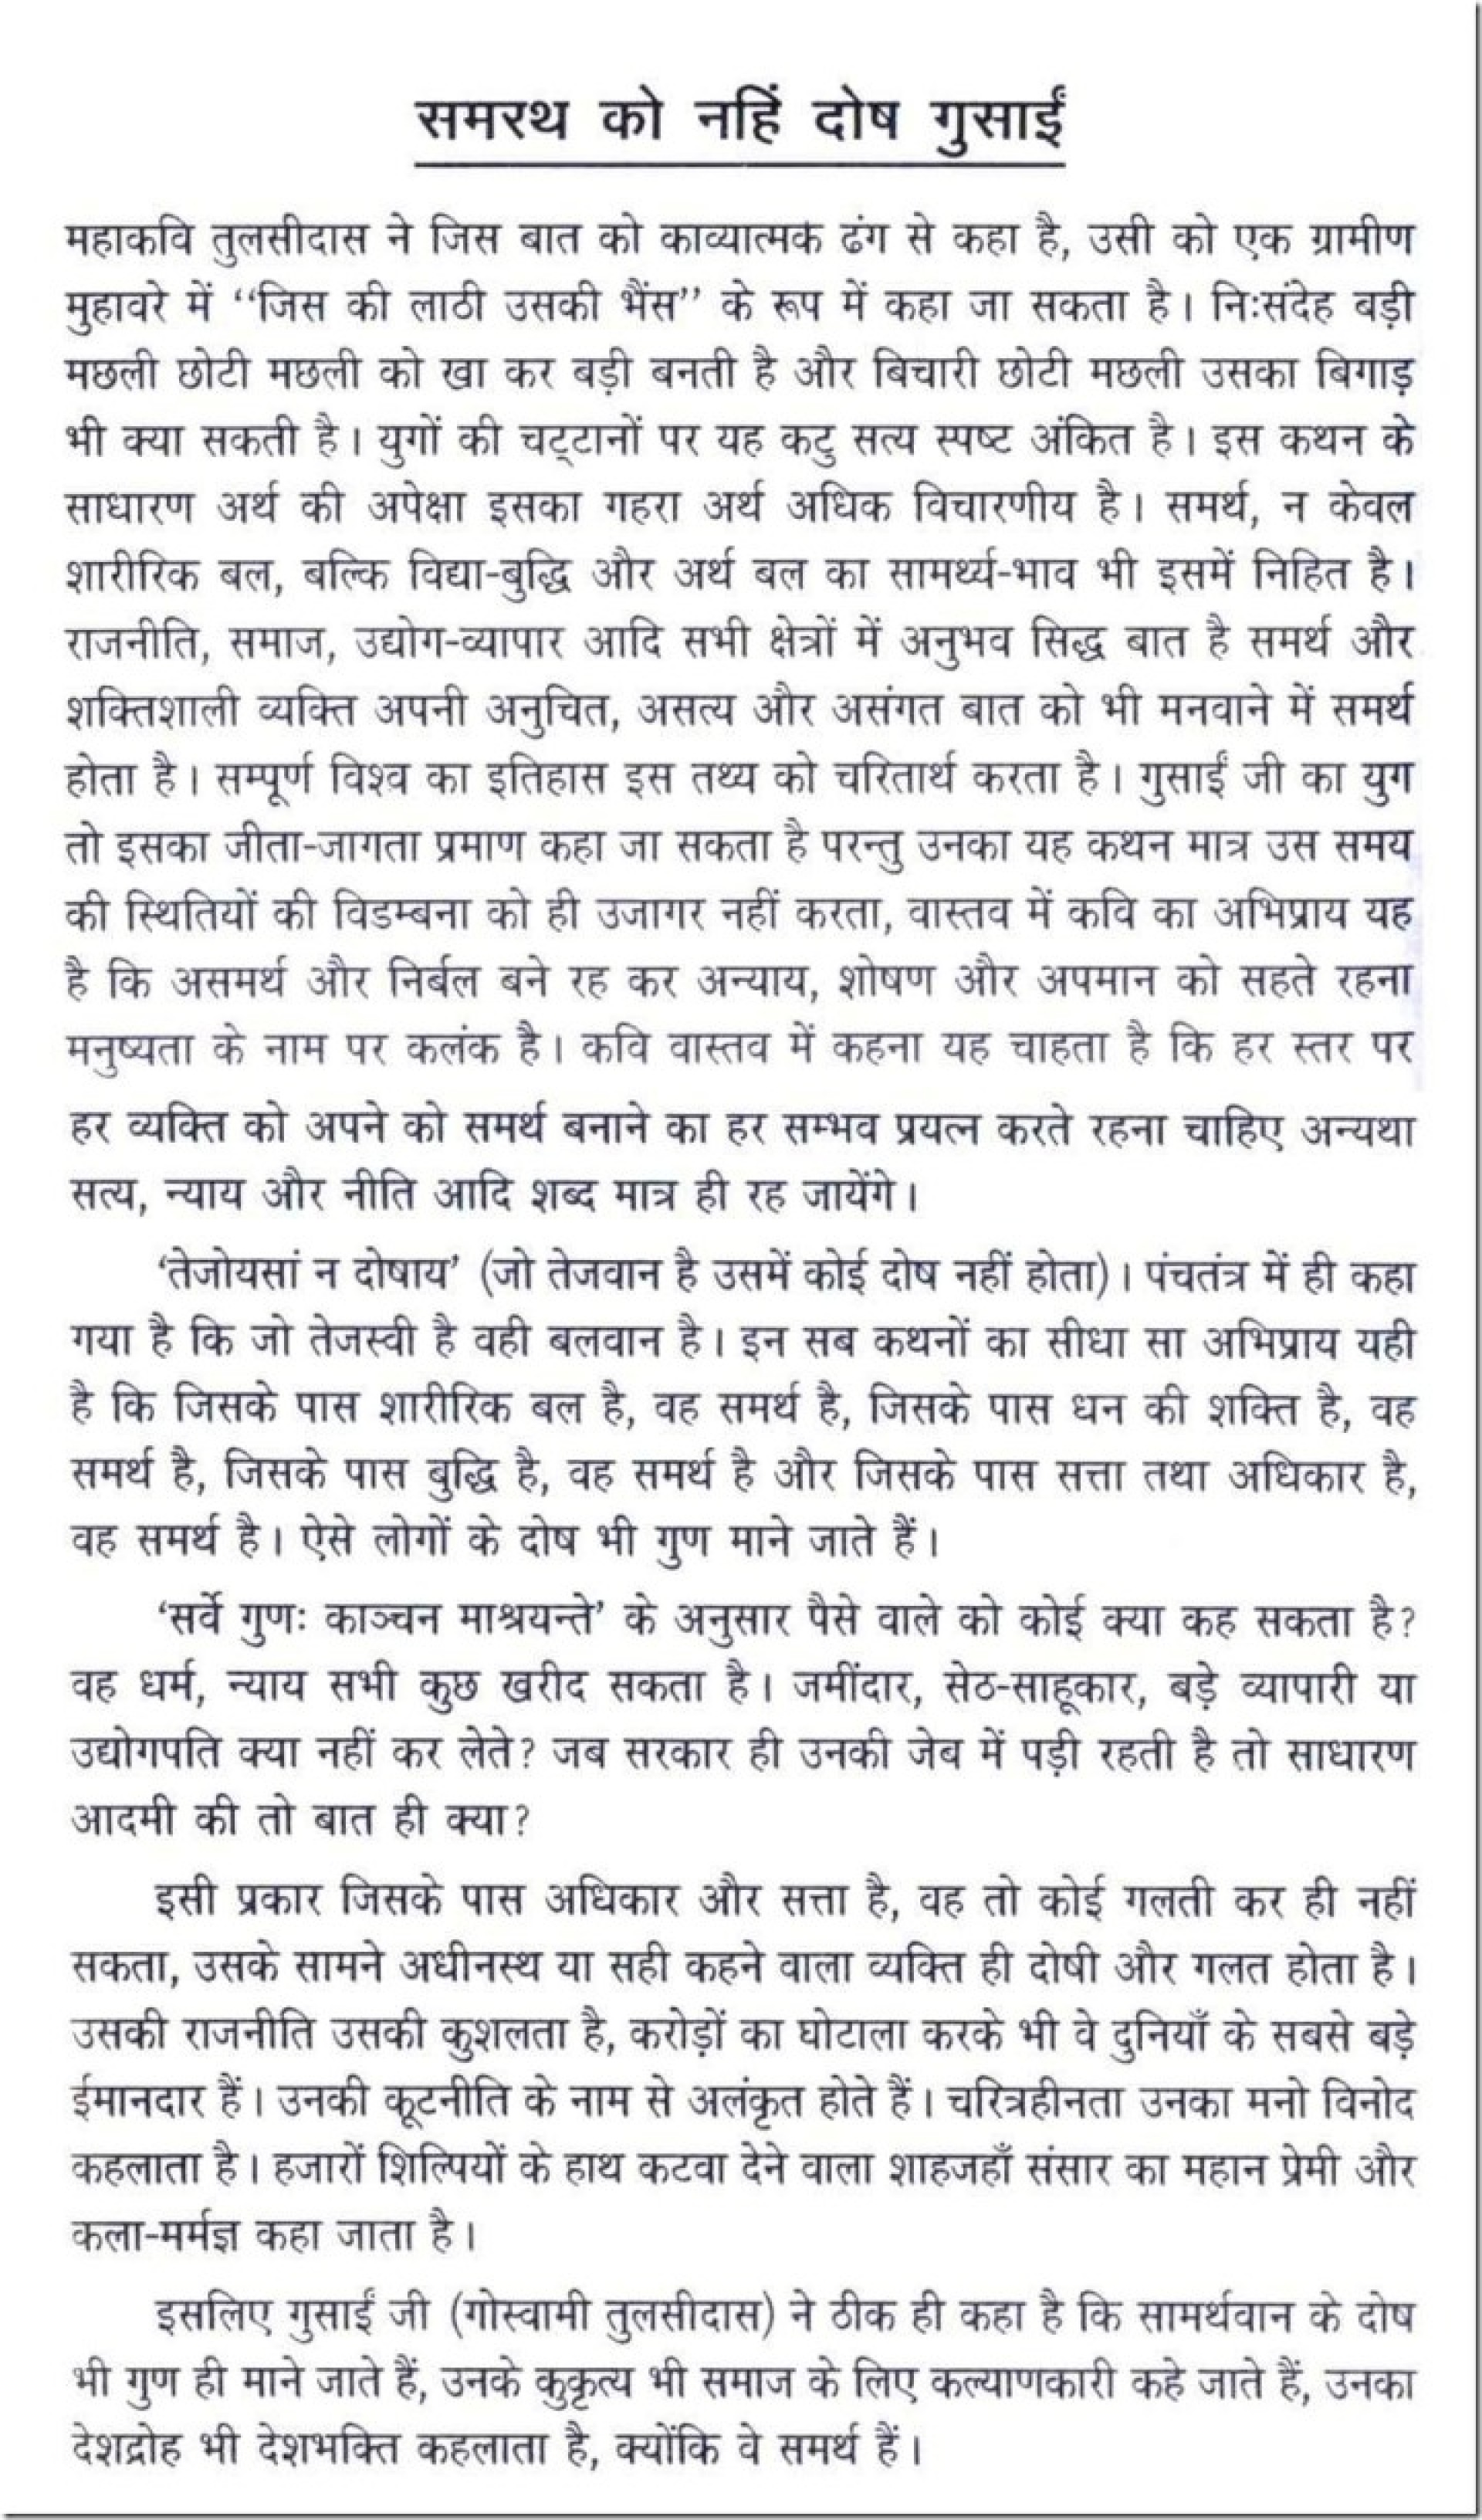 007 Good Habits Essay In Hindi Example Hh0055 Thumbresize7202c1224 Exceptional And Bad Healthy Eating 1920